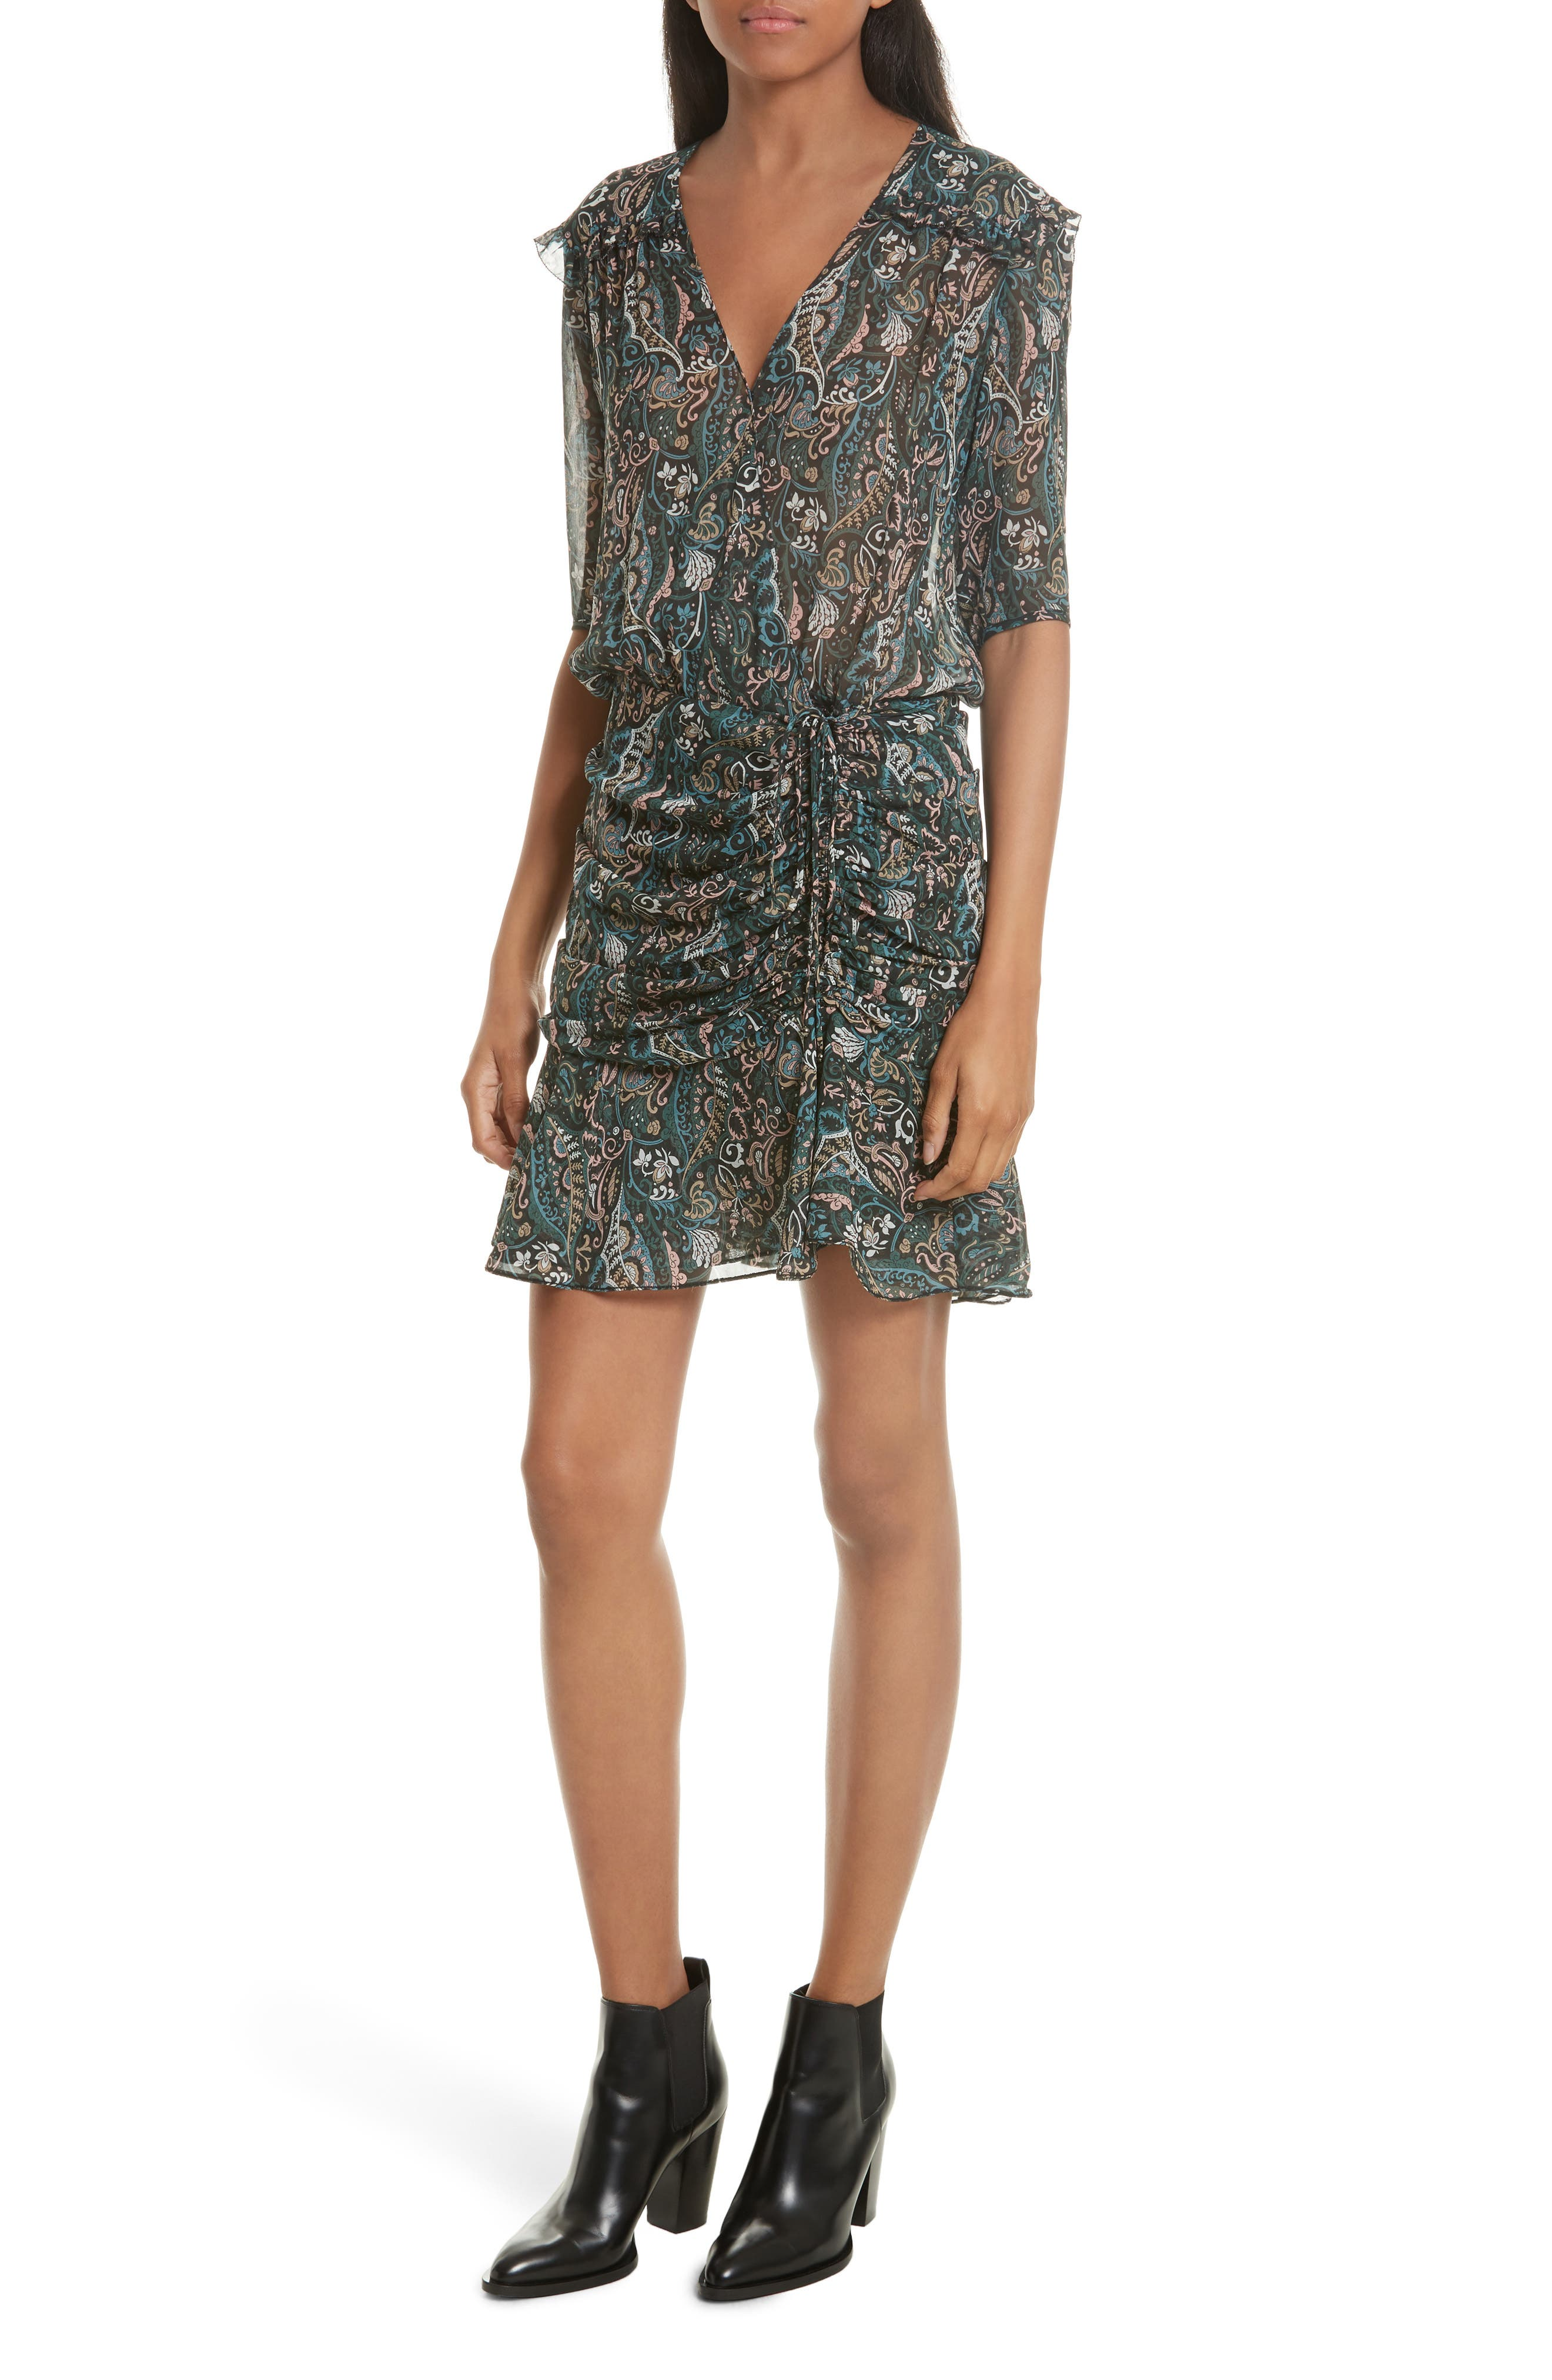 Alternate Image 1 Selected - Veronica Beard Retro Paisley Print Flounce Silk Dress (Nordstrom Exclusive)